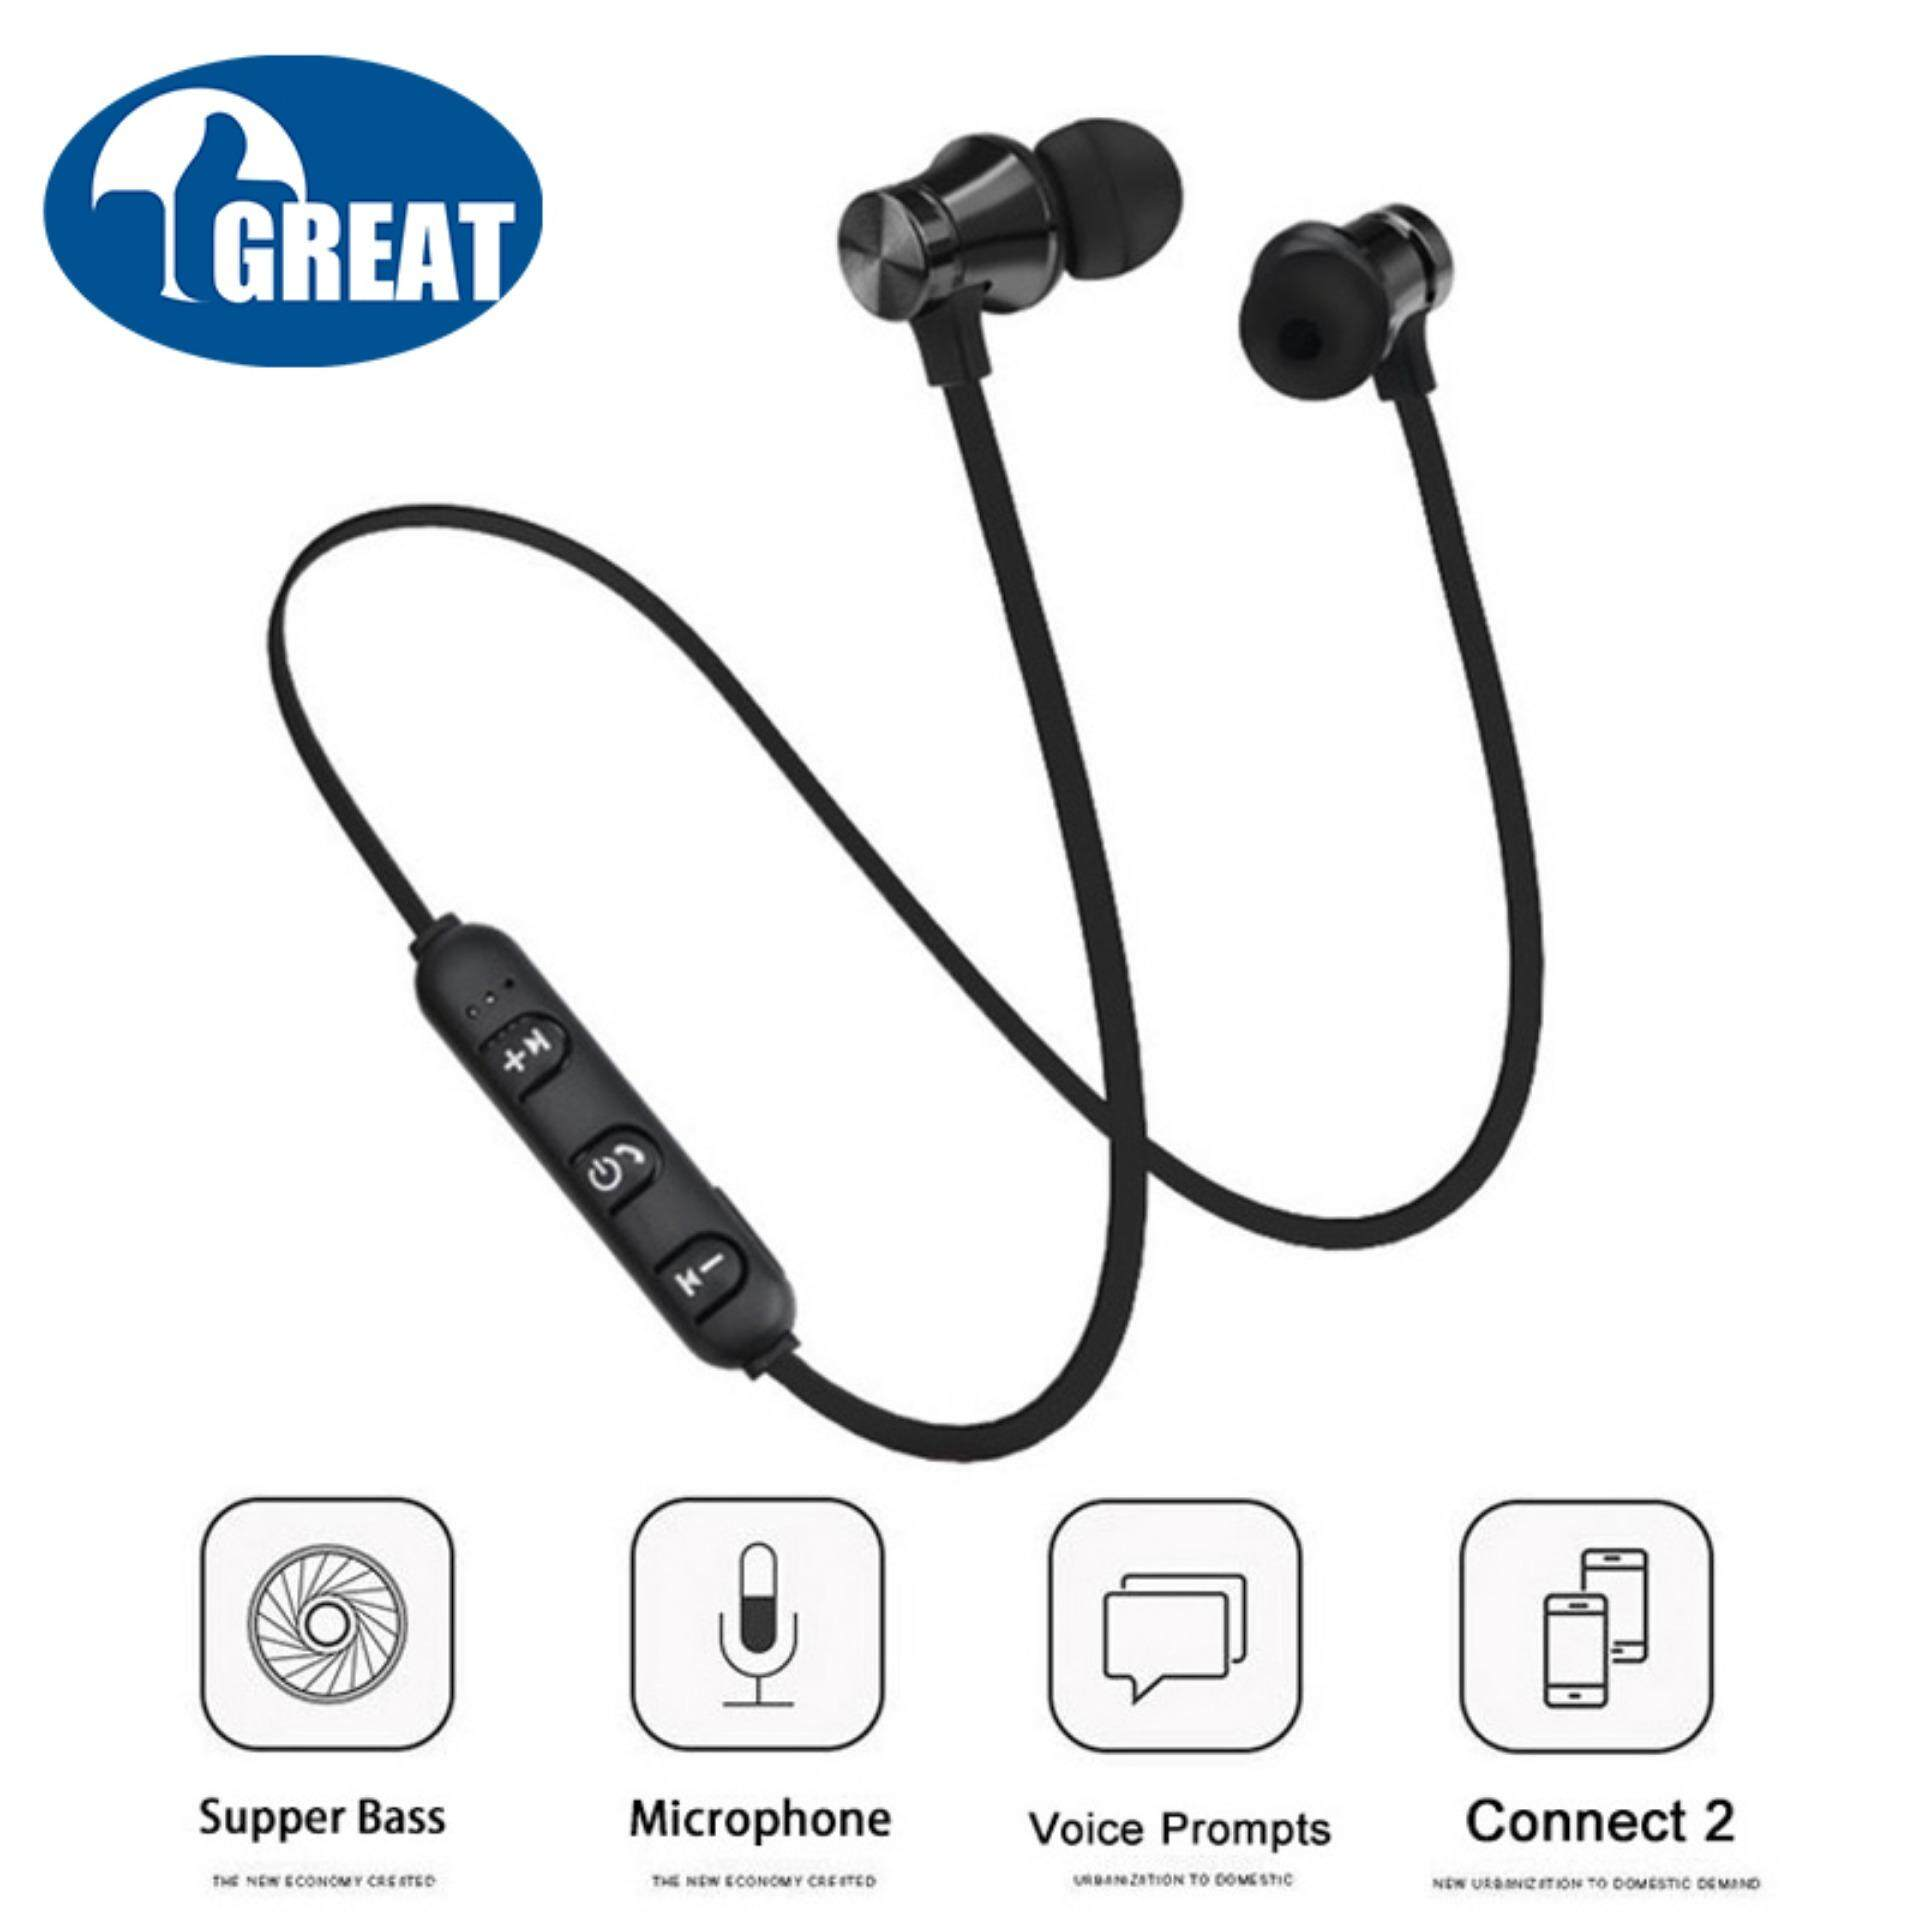 Earphone Accessories 5mm Bluetooth Earphones Transparent Soft Silicone Ear Hook Loop Clip Headset Catalogues Will Be Sent Upon Request Portable Audio & Video